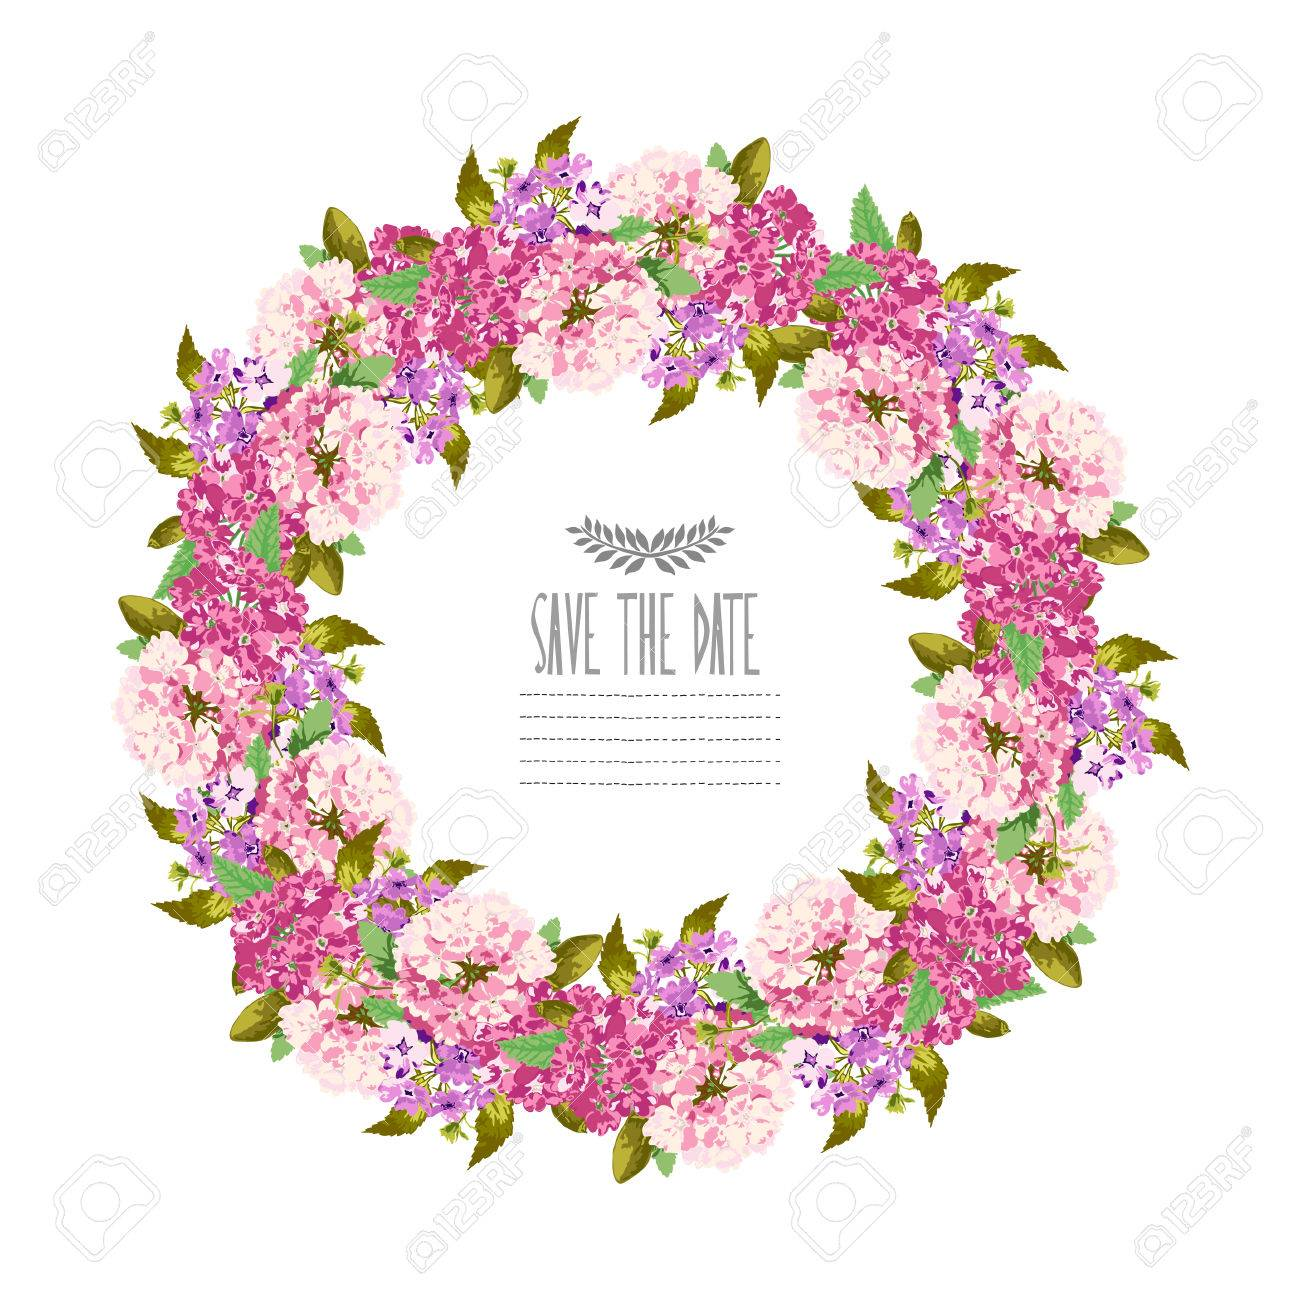 Elegant Floral Wreath Design Element Can Be Used For Wedding